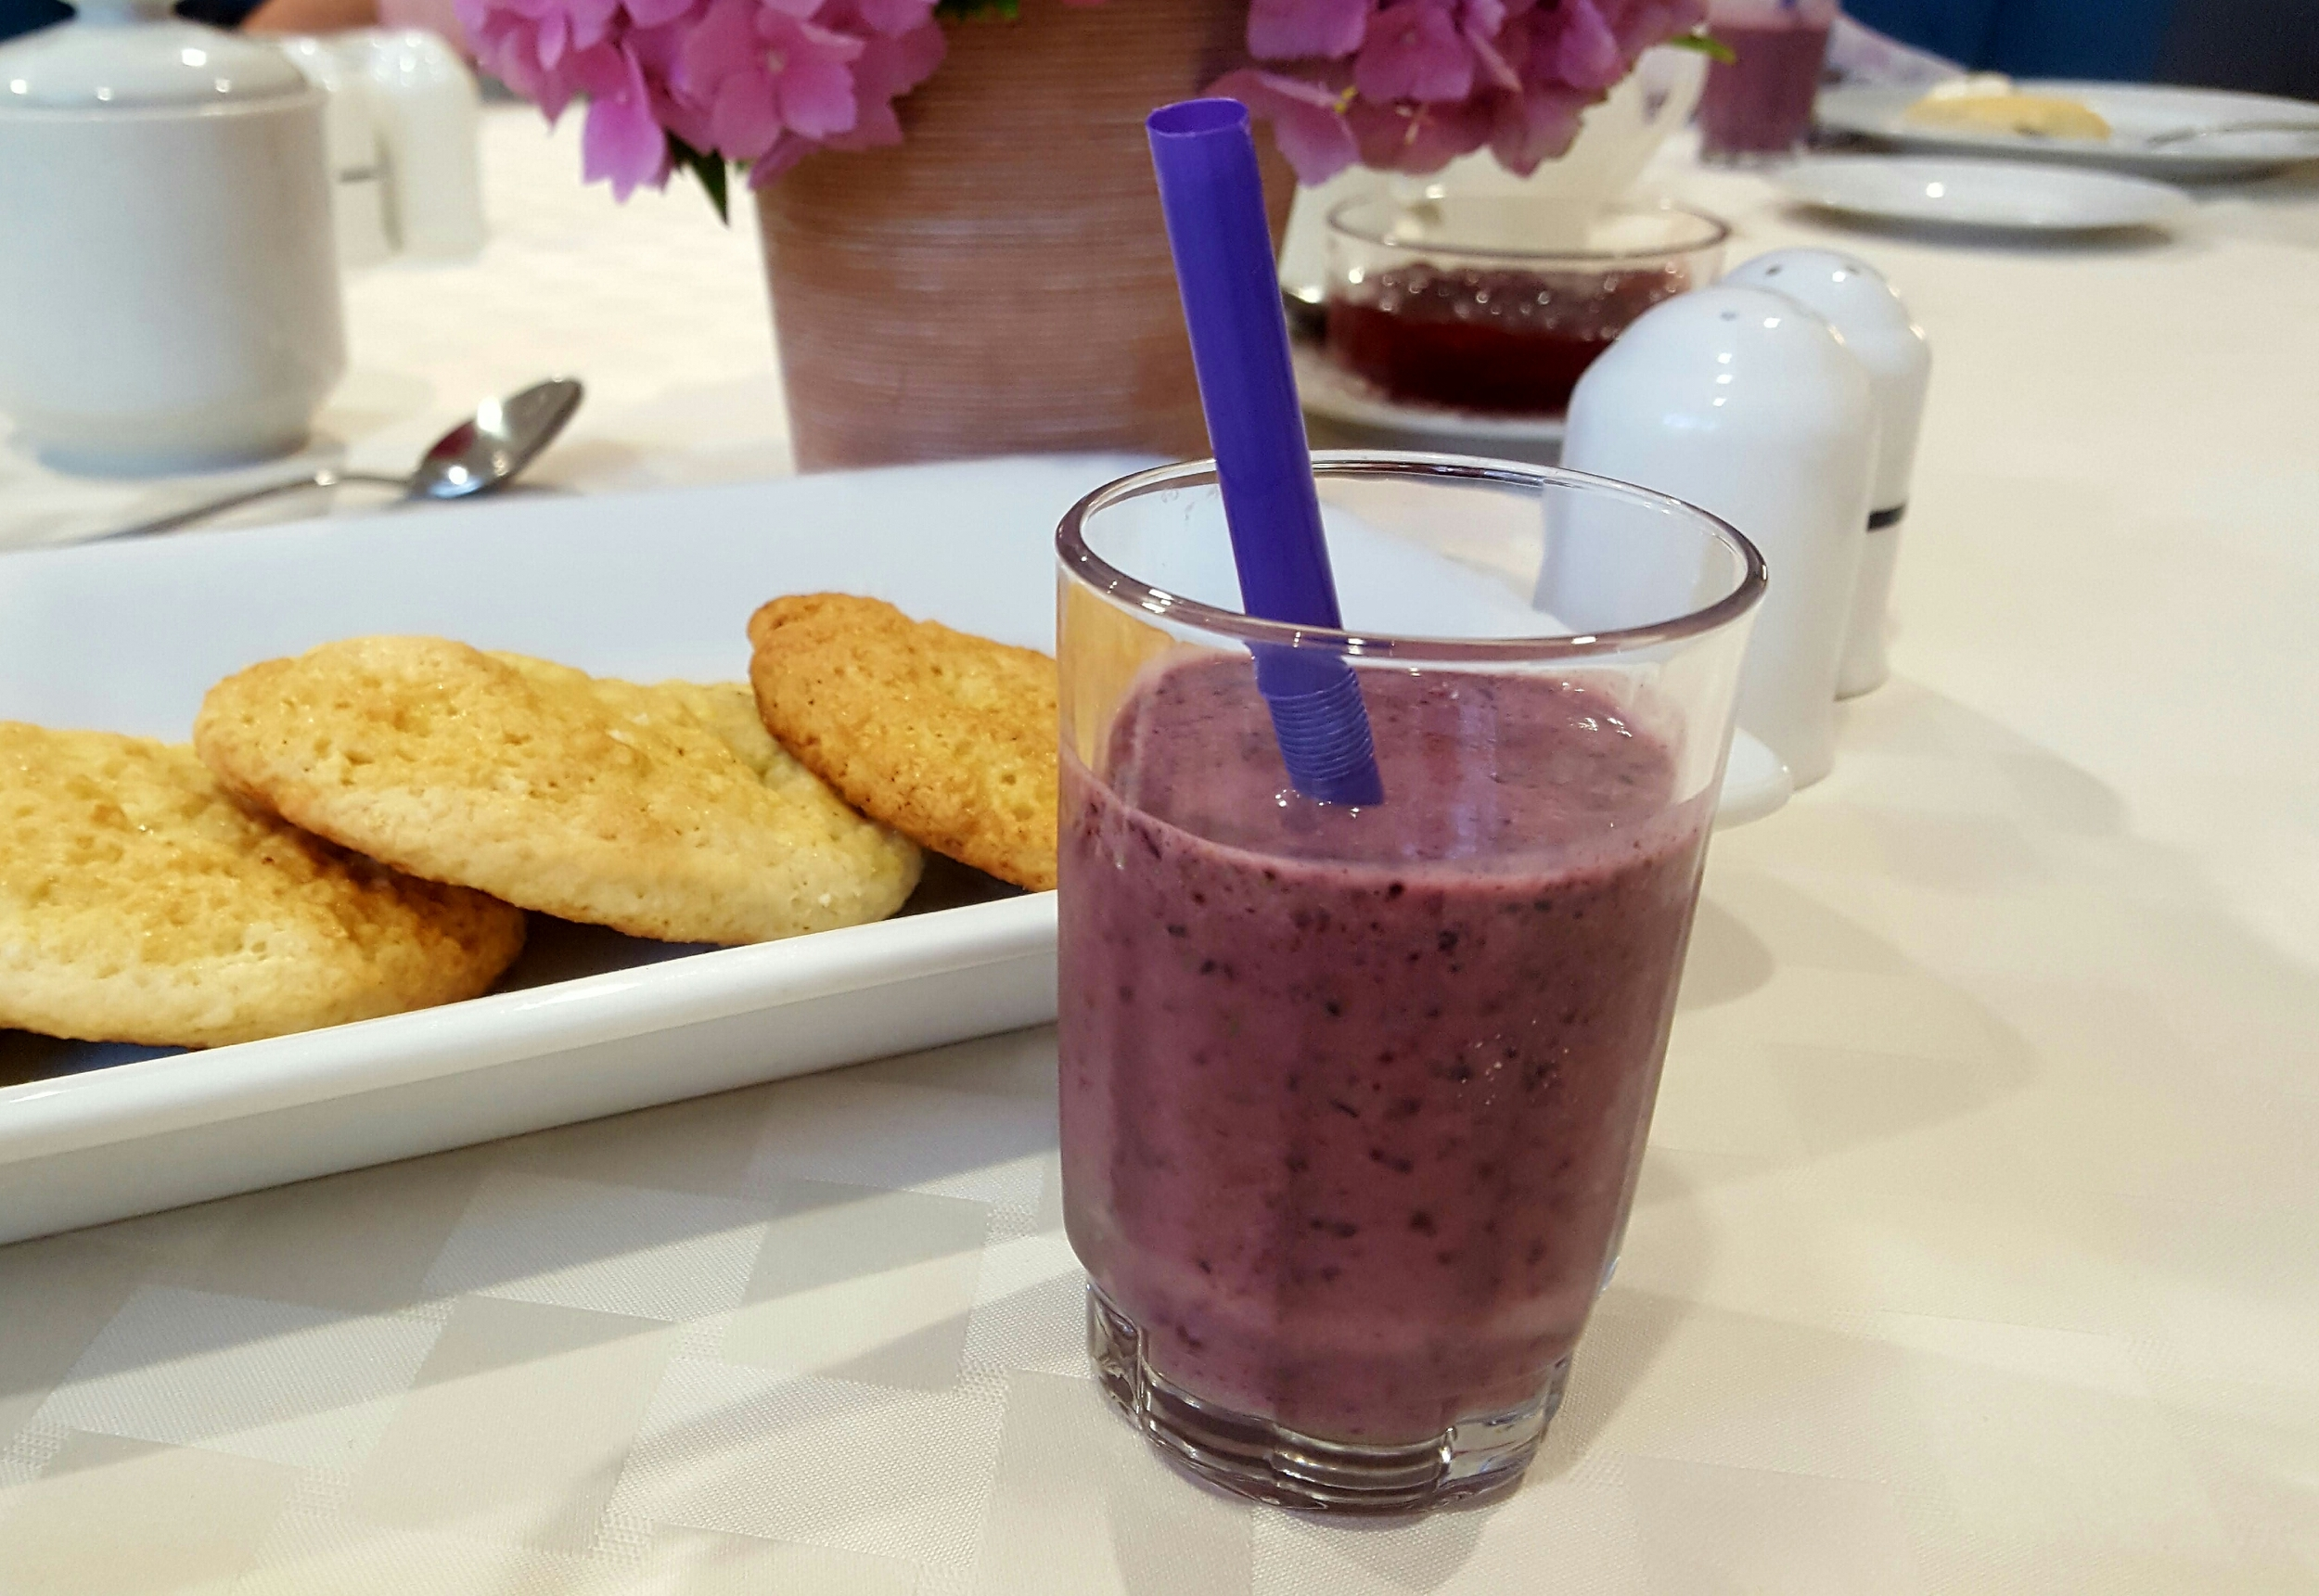 Breakfast Smoothies - Kale and Blueberry